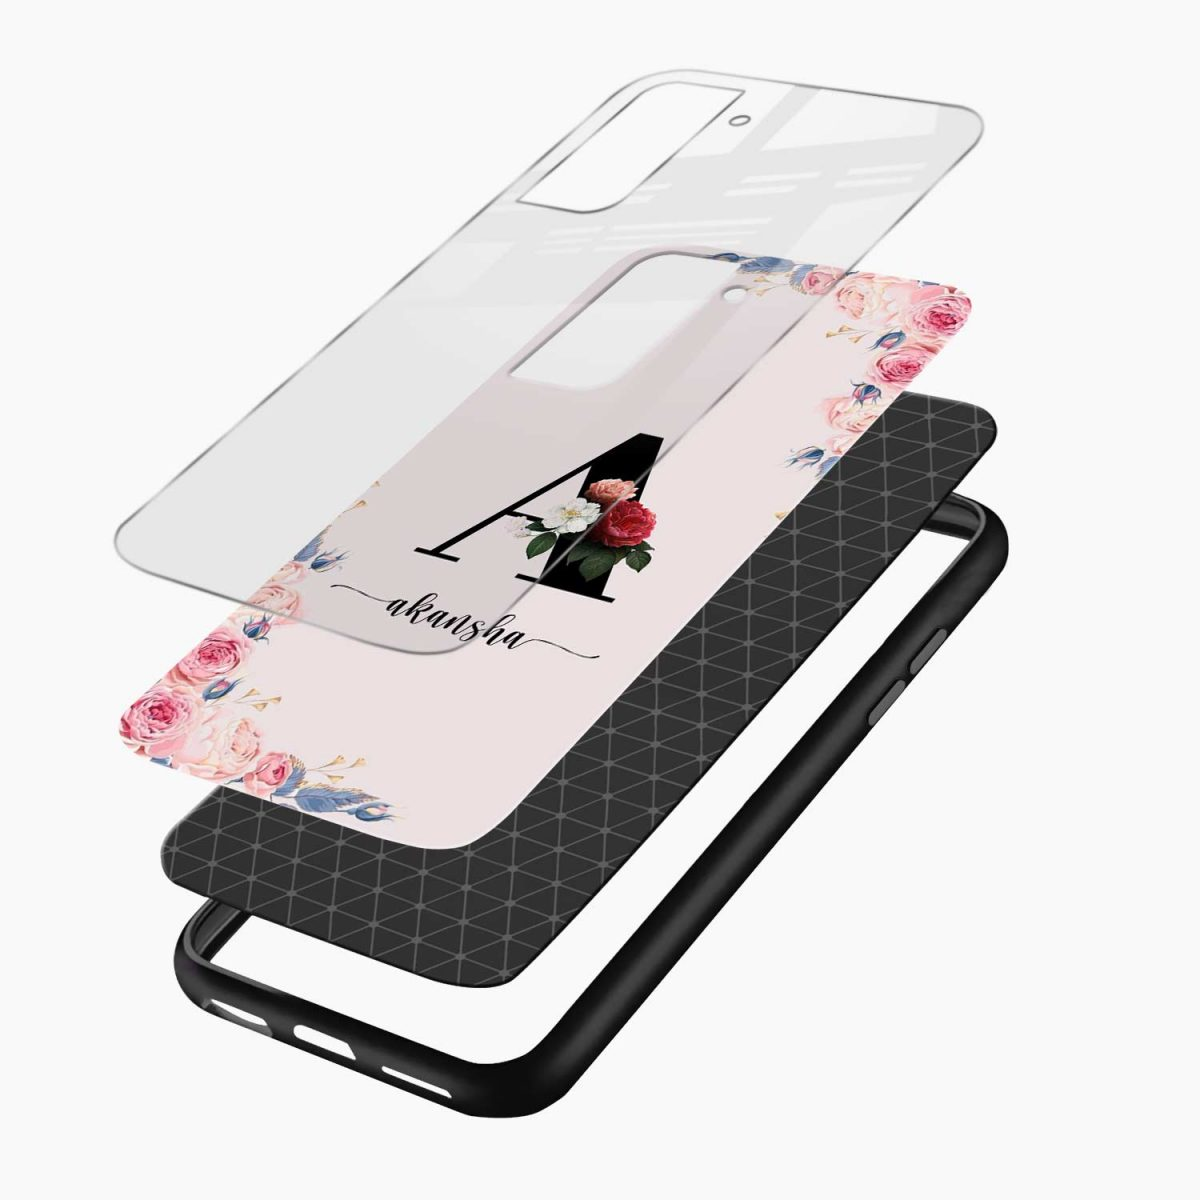 floral name personalised layers view samsung s21 plug back cover